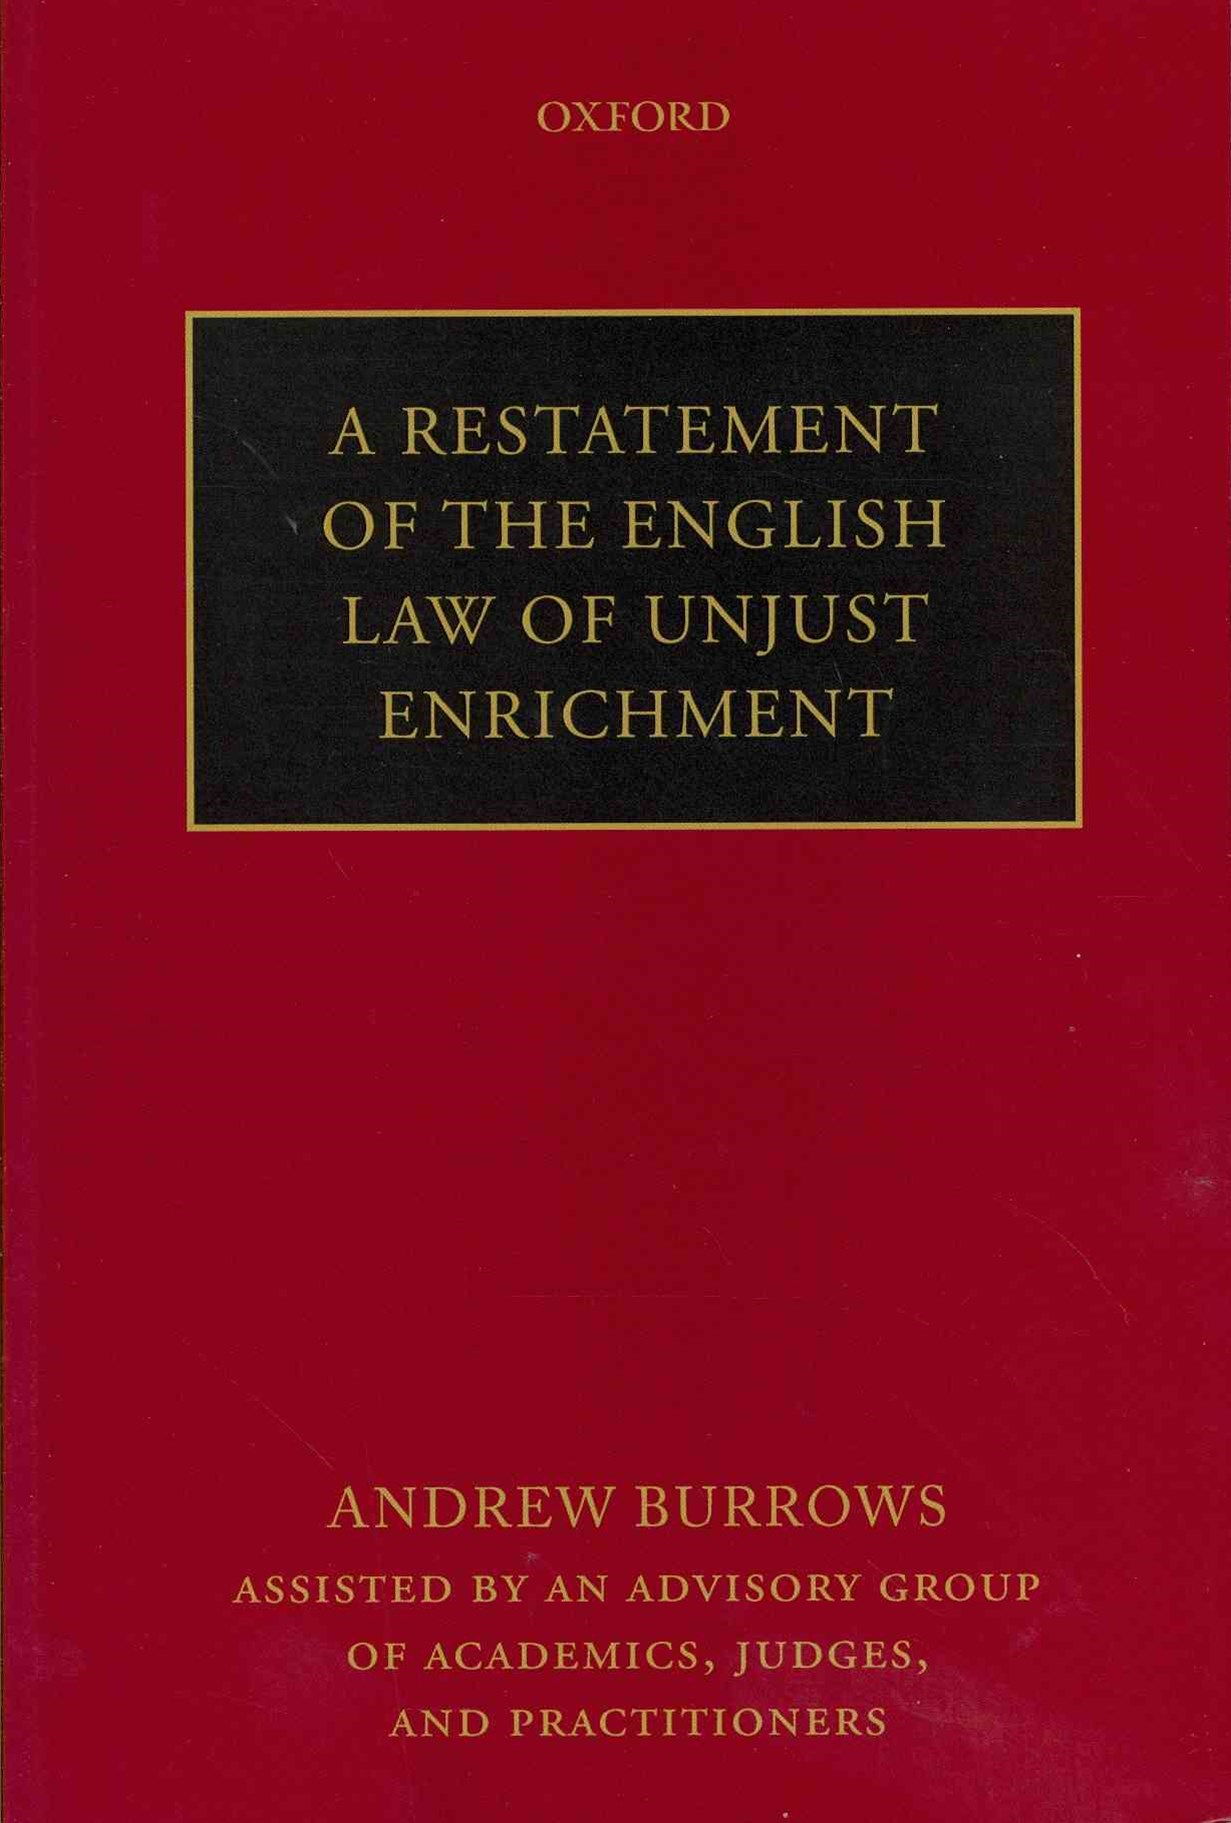 Restatement of the English Law of Unjust Enrichment